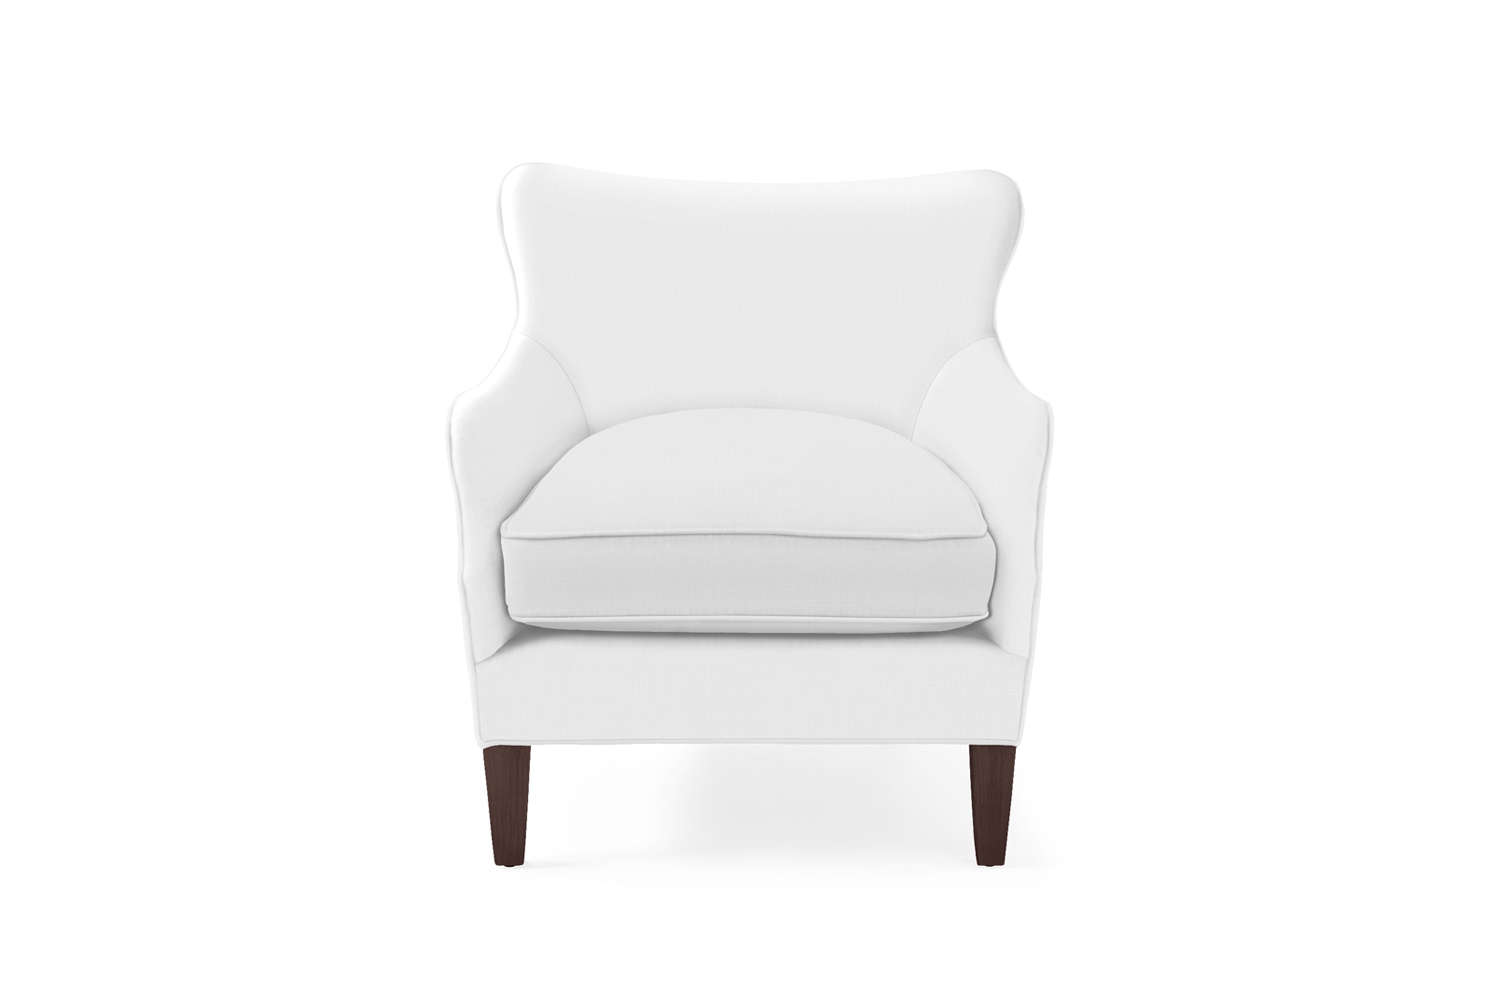 The Serena & Lily Elm Chair is an update on the classic wingback style; $